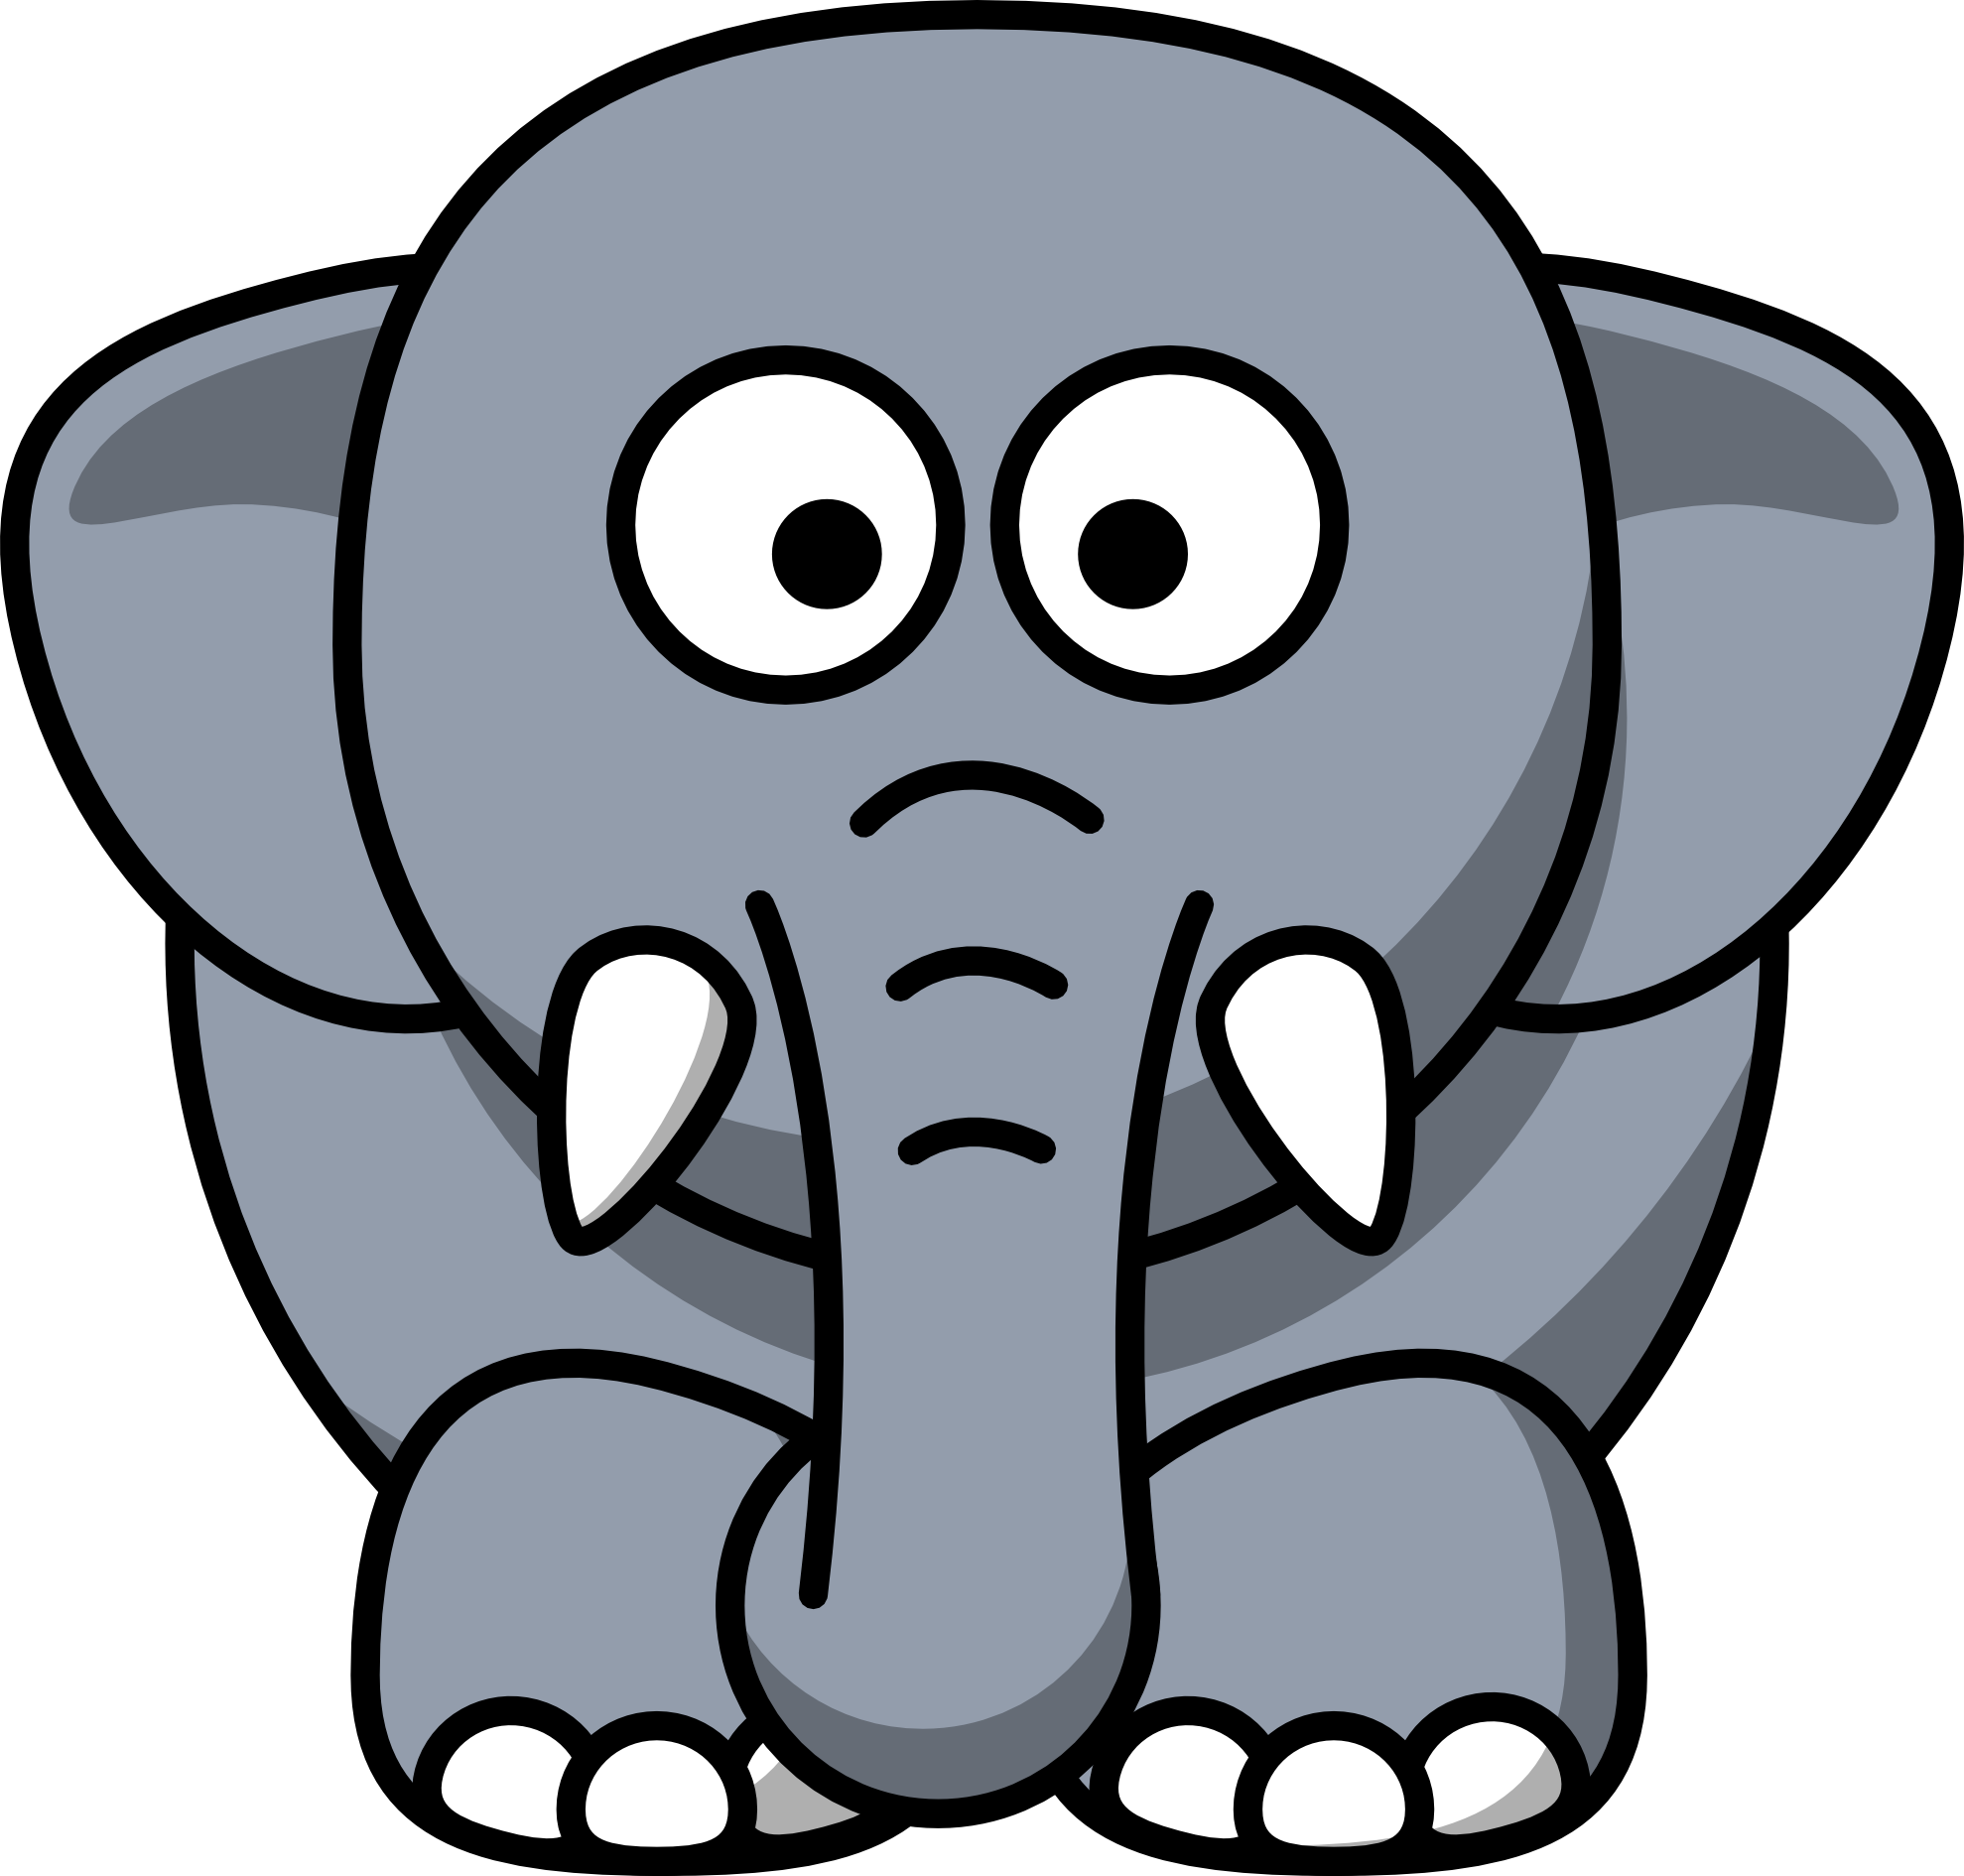 Cow clipart elephant. Getting back into working